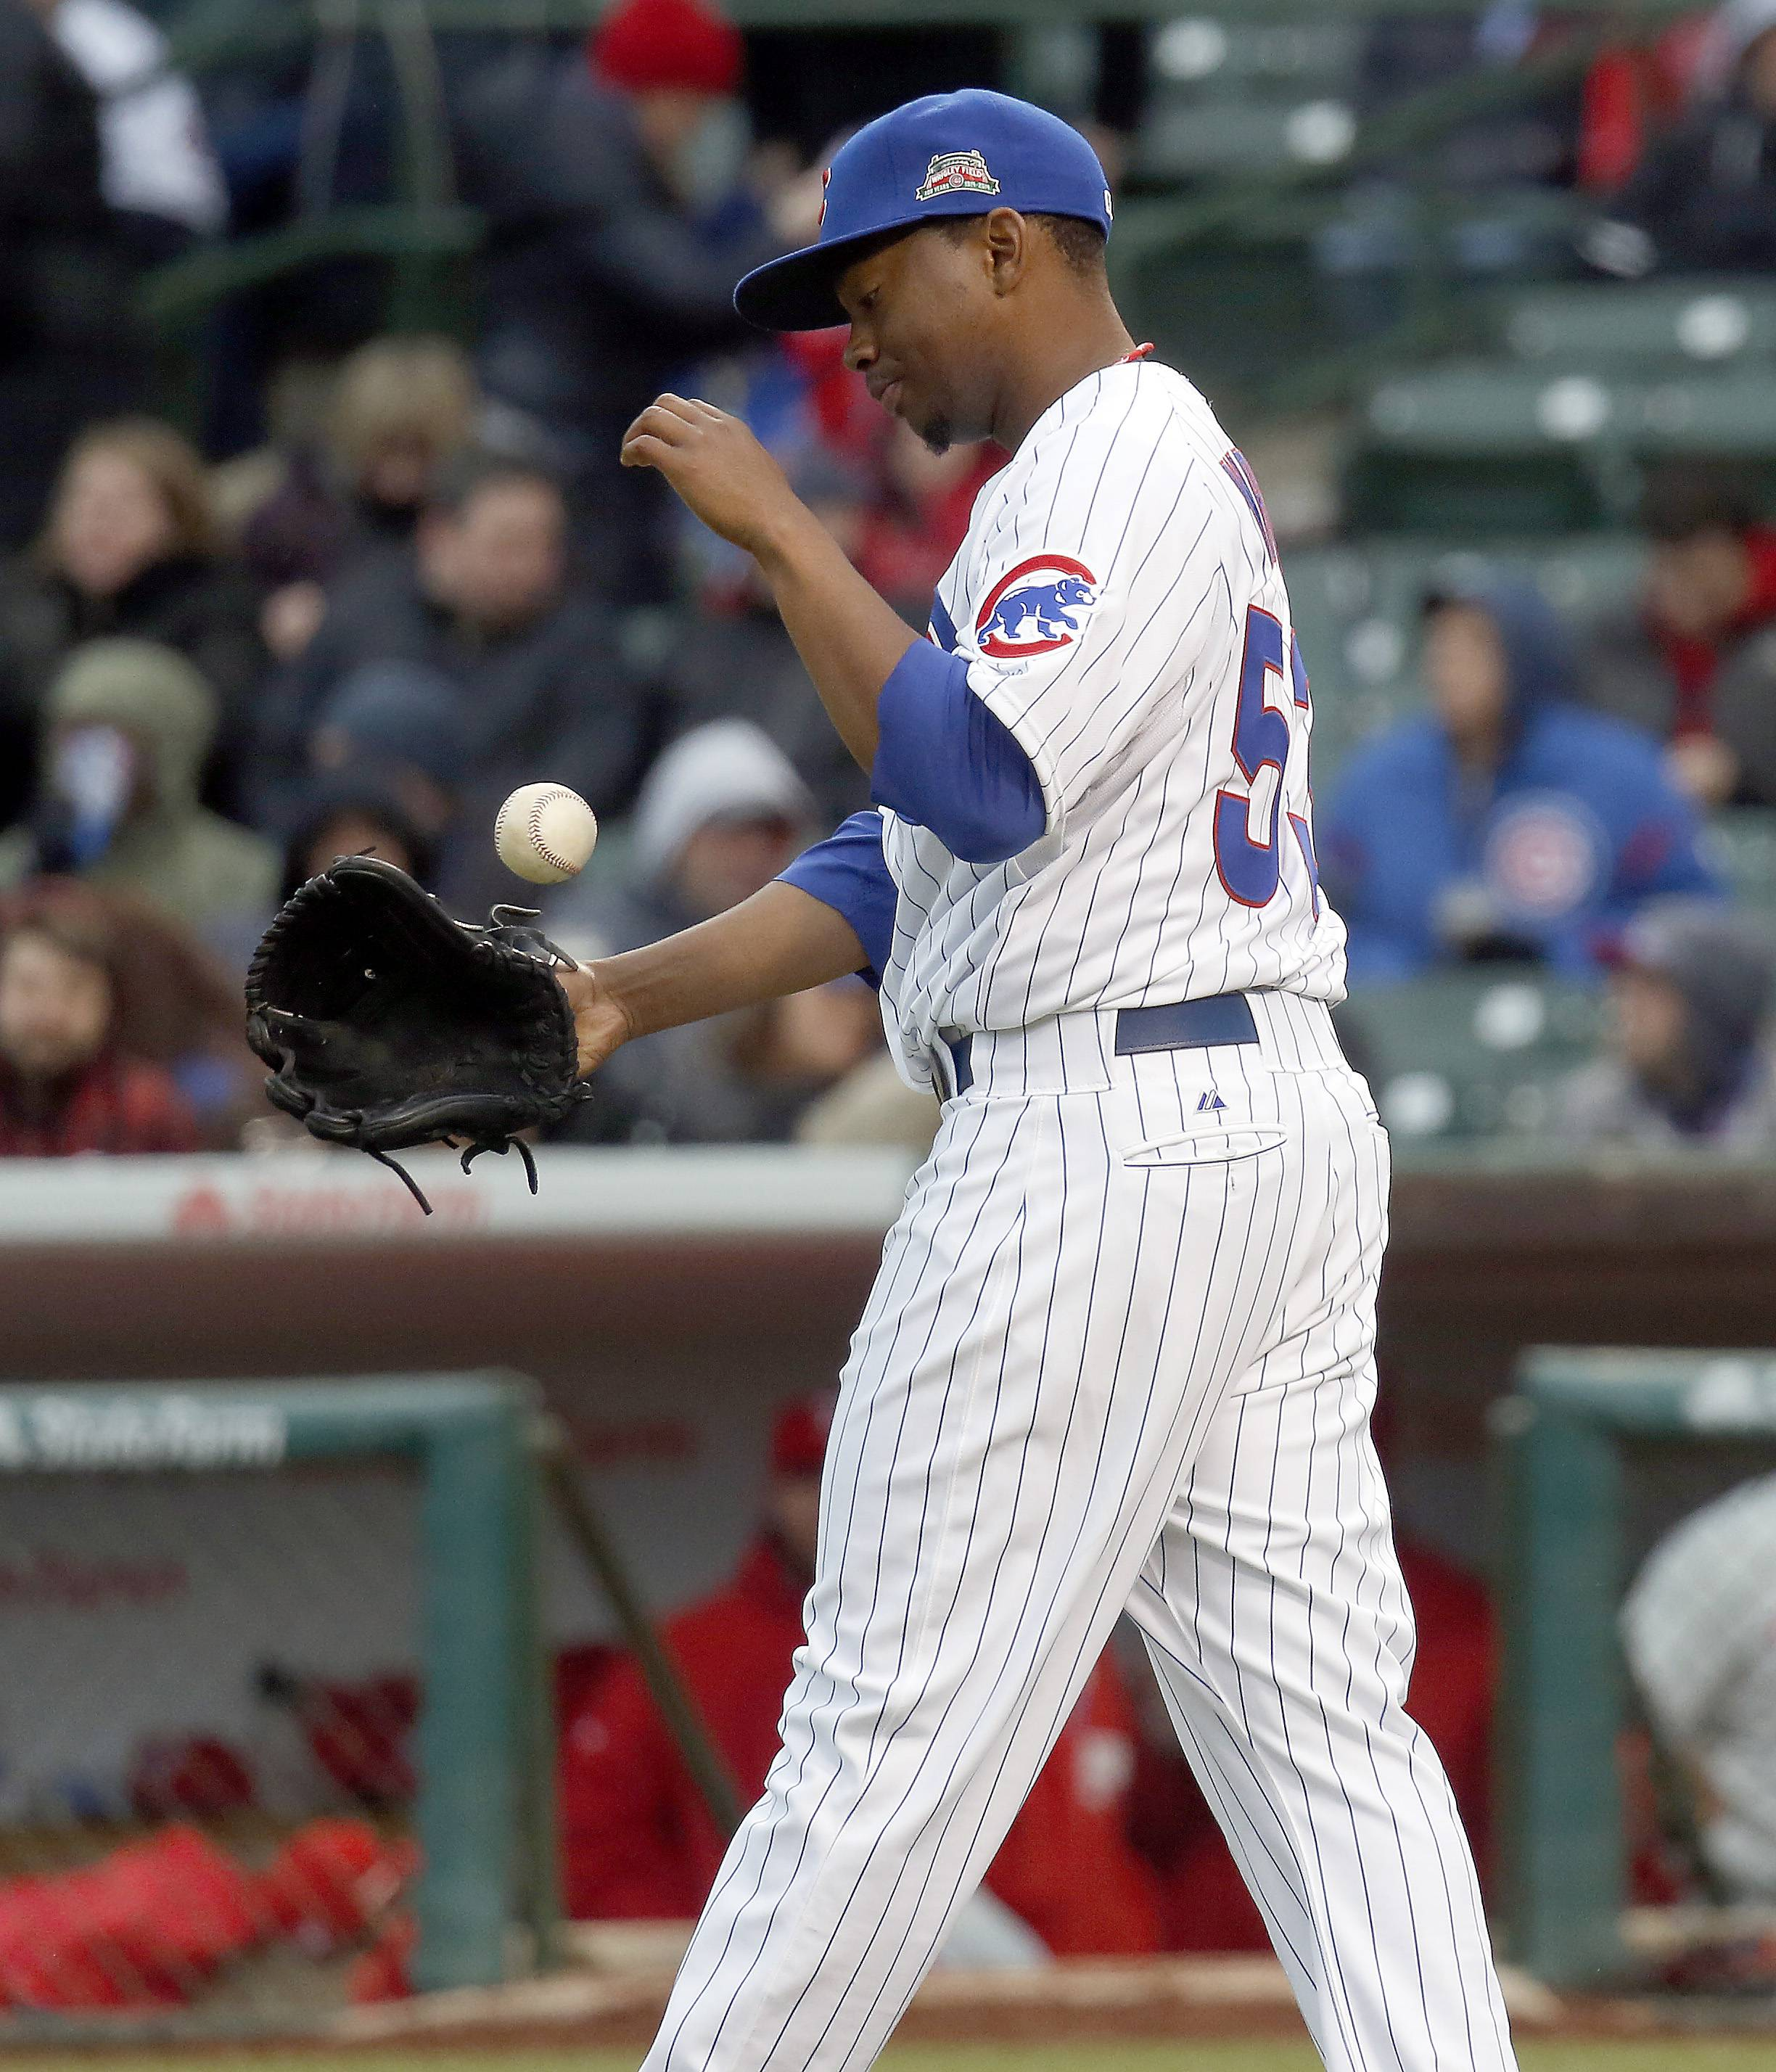 Cubs reliever Wesley Wright reacts after giving up a 2-run homer in the eighth inning Friday.